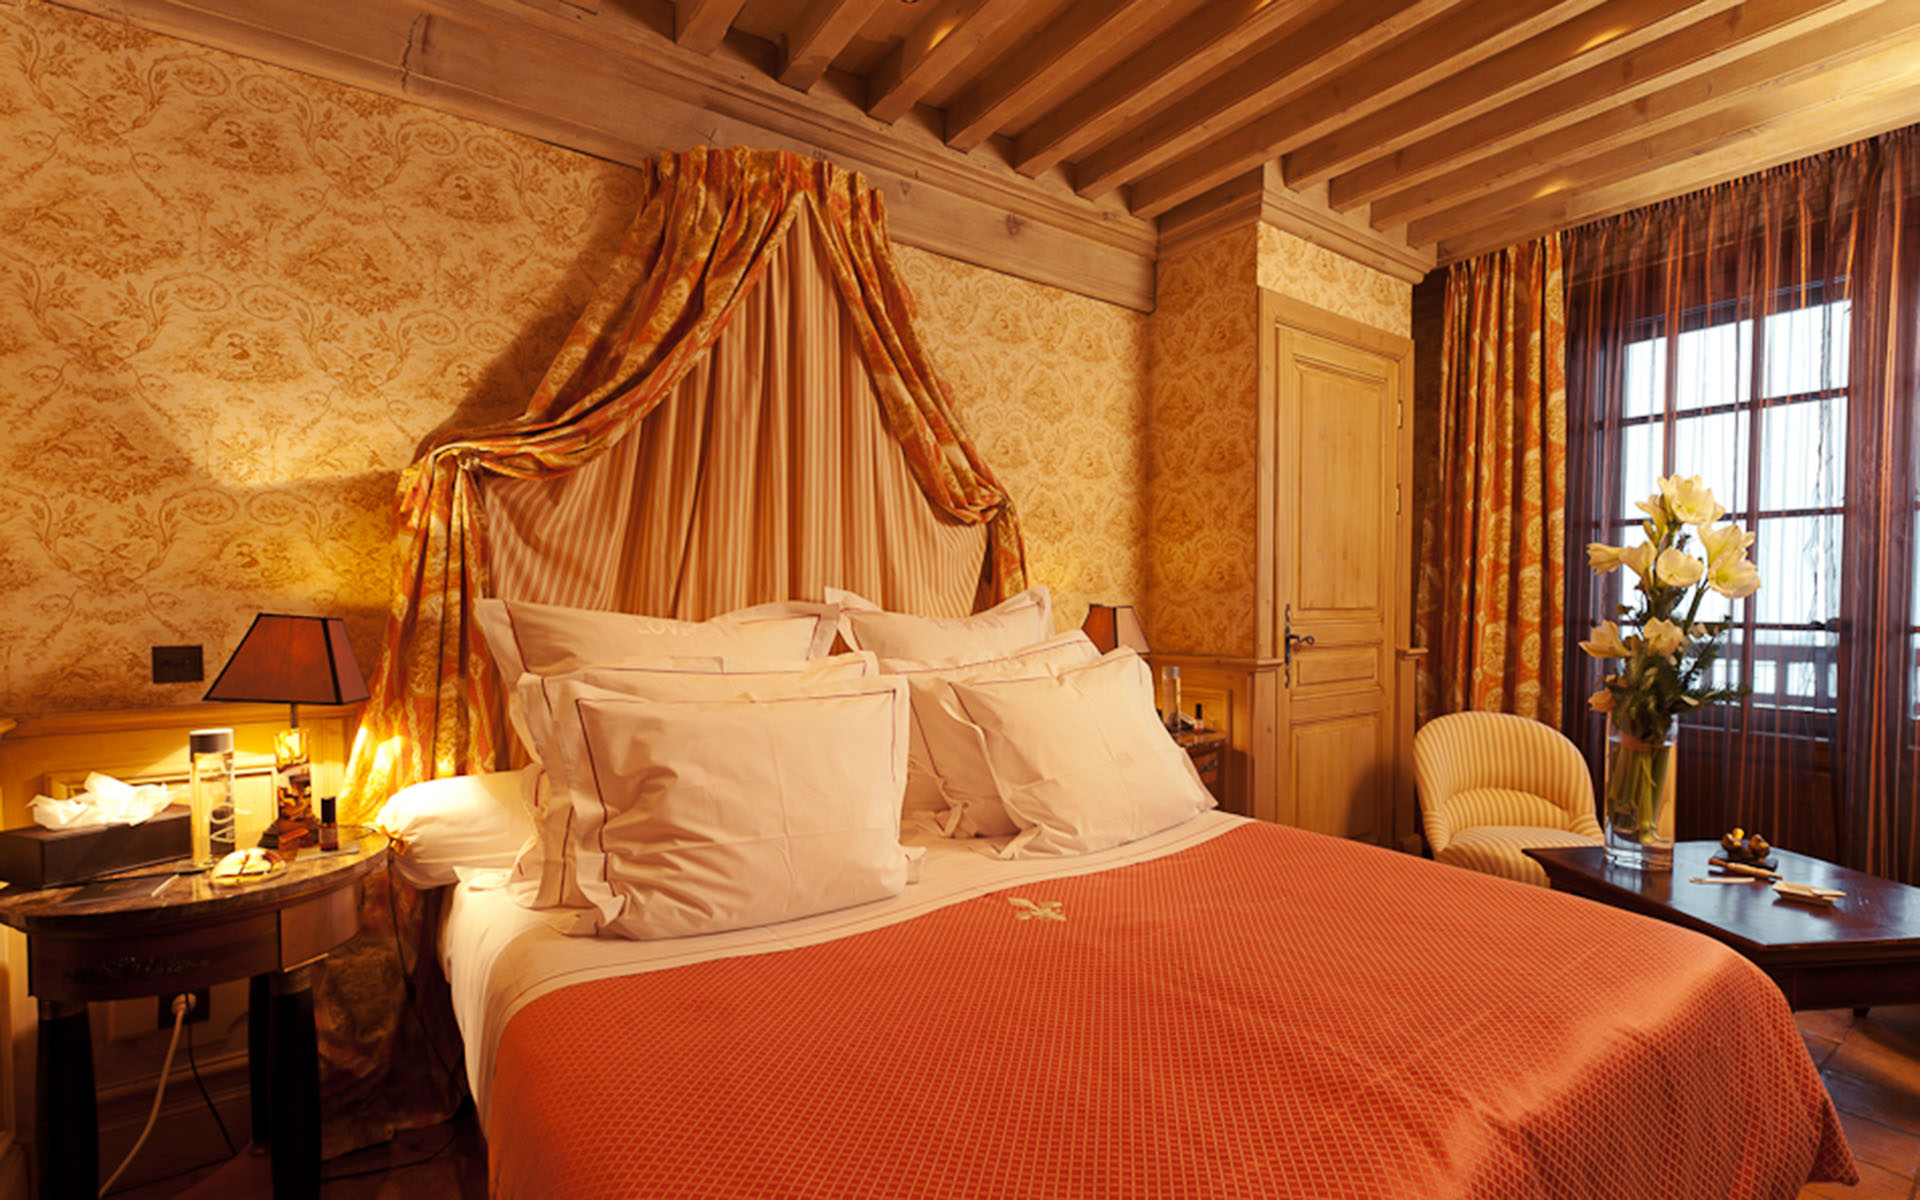 290/Hotel Saint Joseph/Chambre/Standards/Saint_joseph_courchevel_standard2.jpg